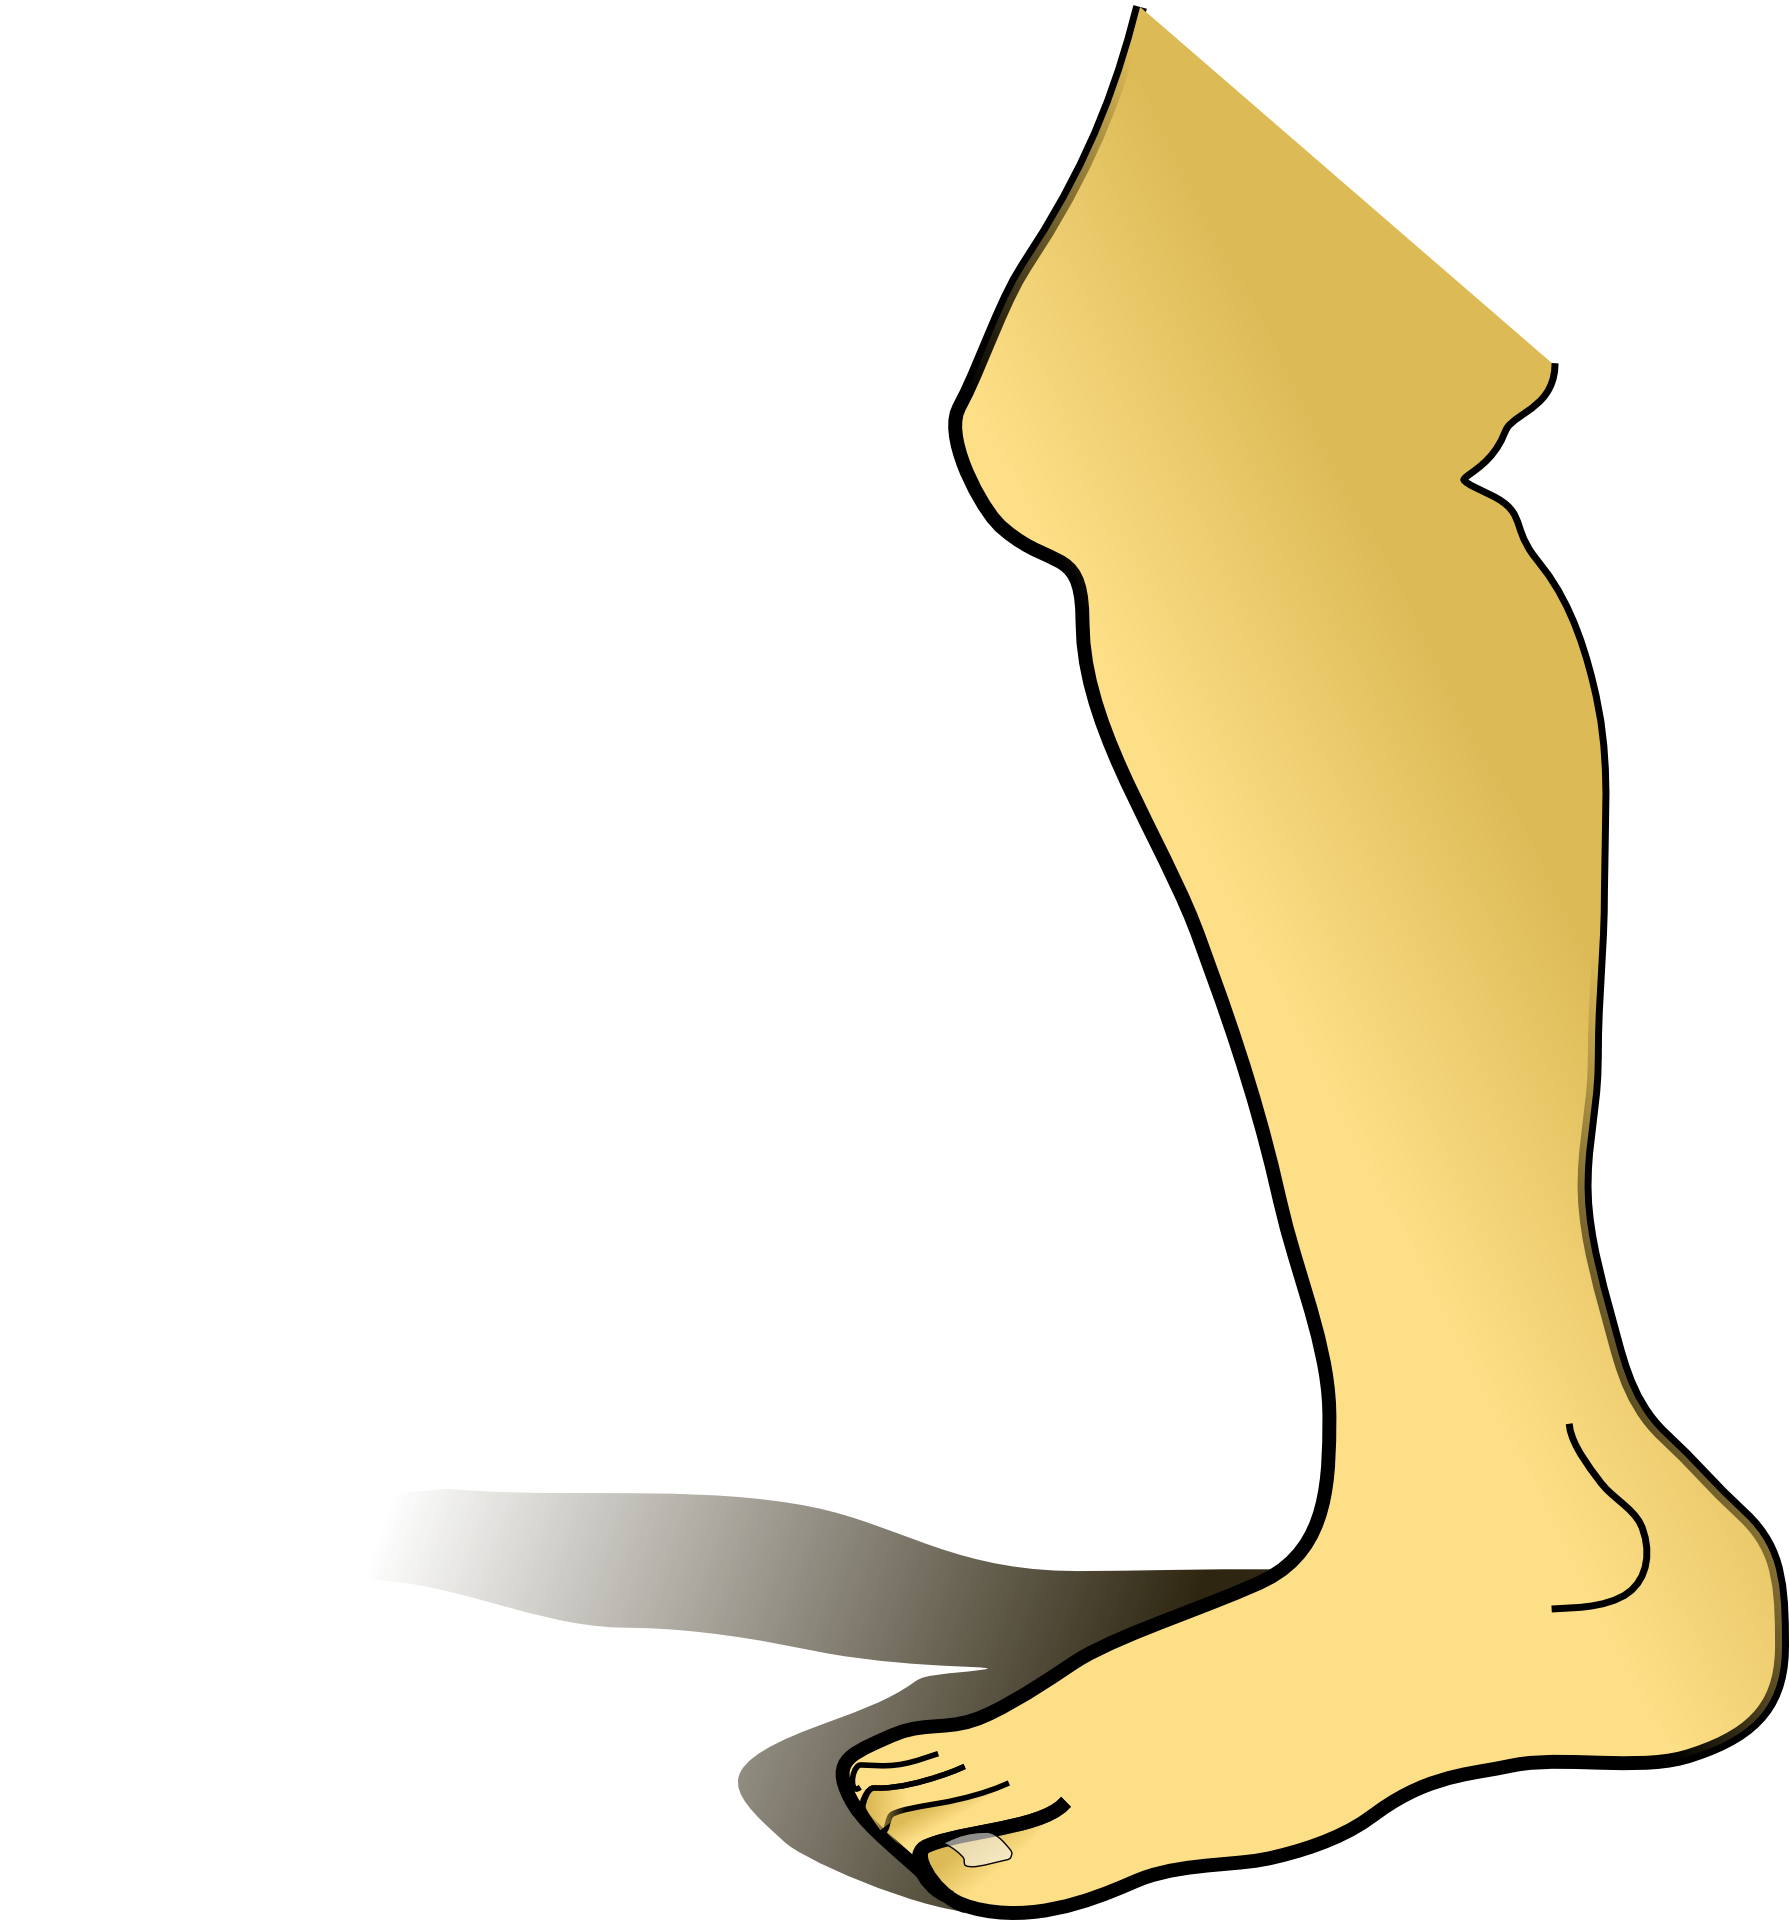 Knee clipart bend knee. Do you know what